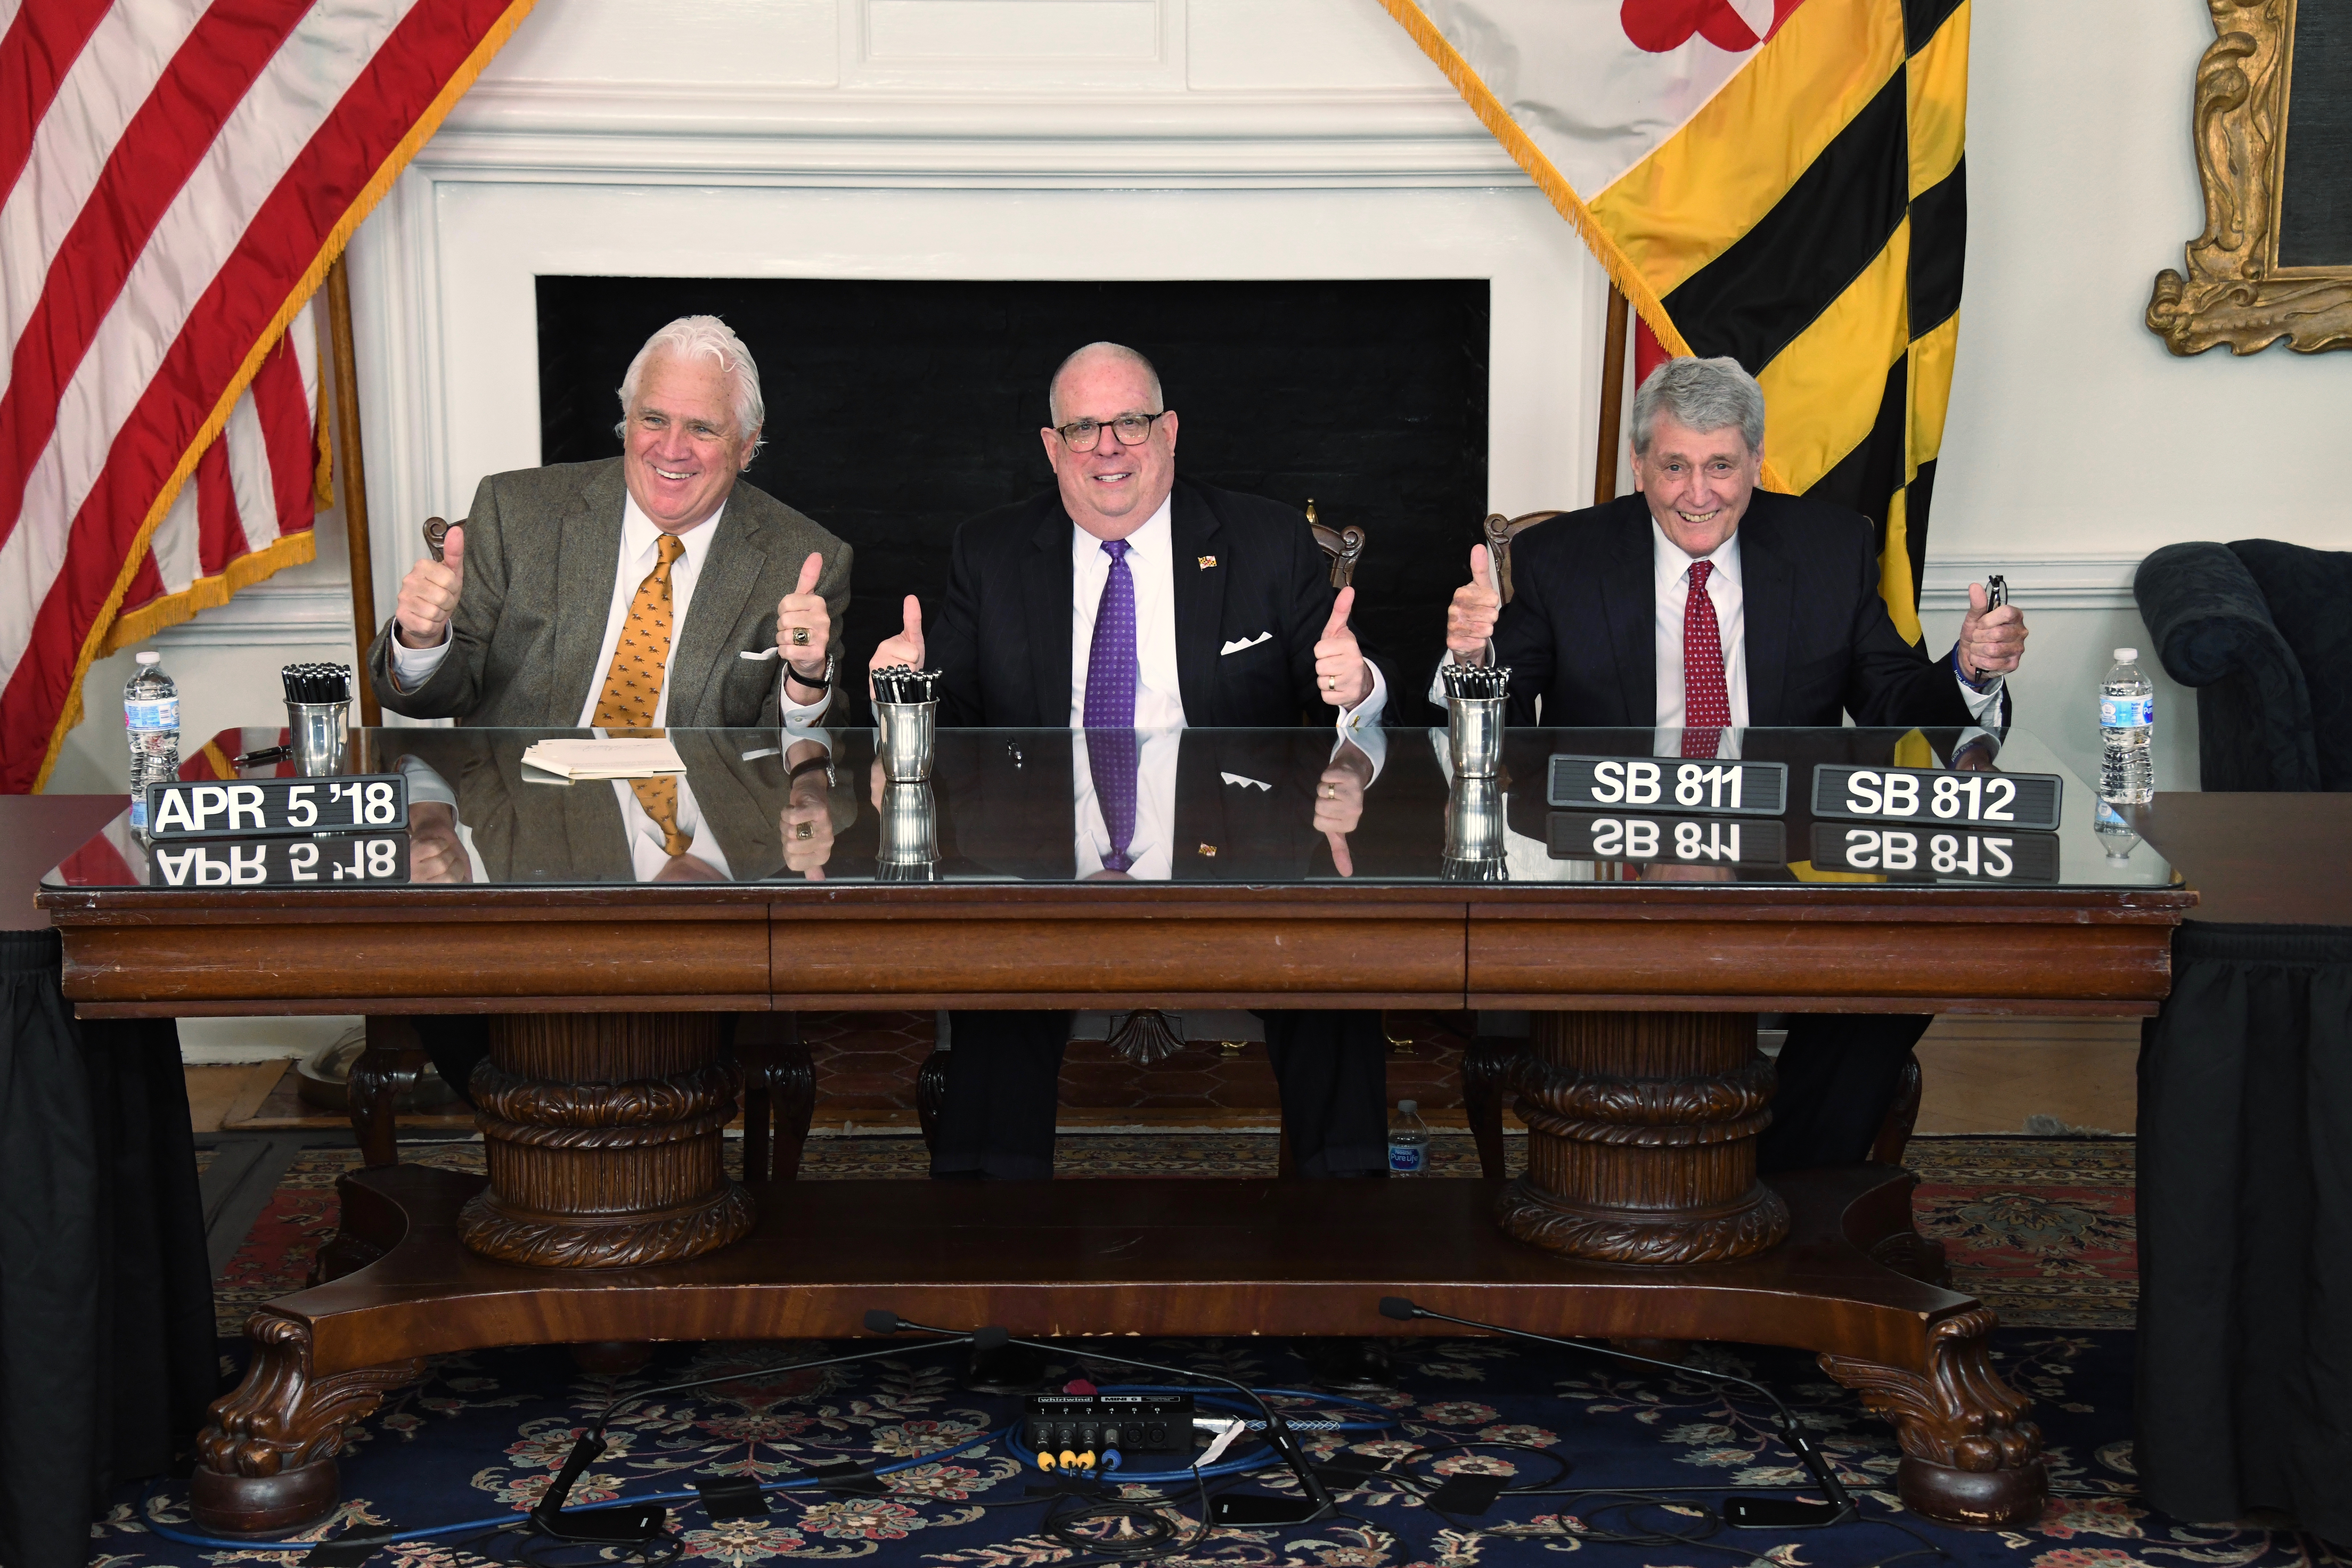 Analysis: Hogan wins by not losing, and actually winning on big issues